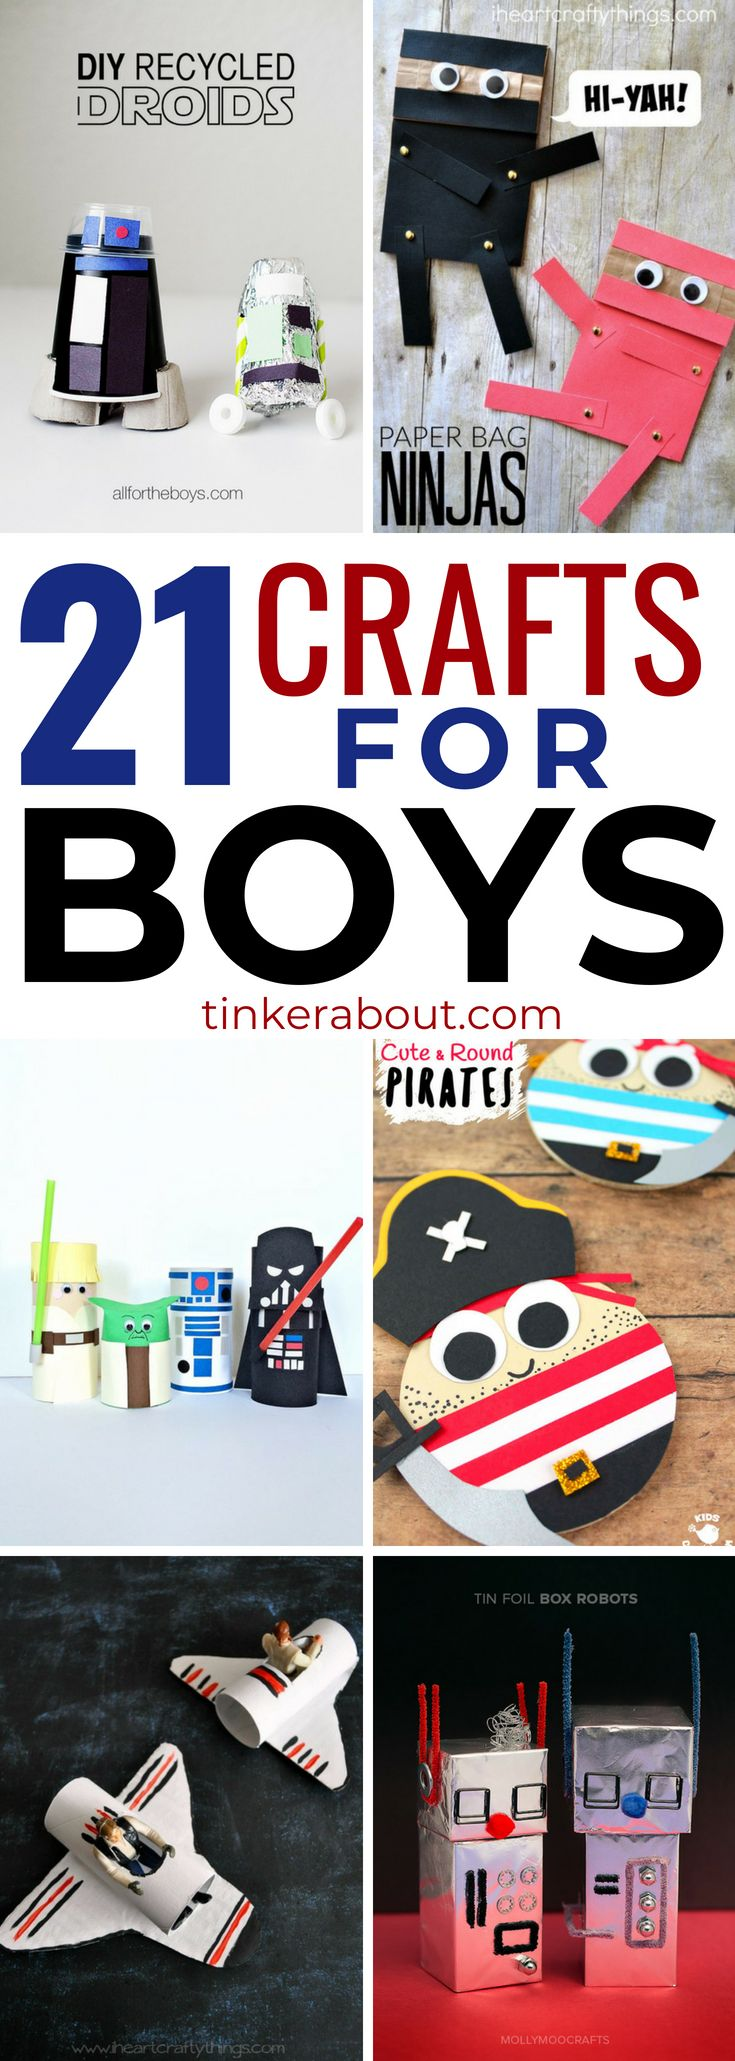 21 Clever Crafts For Boys To Make With Your Little One(s)